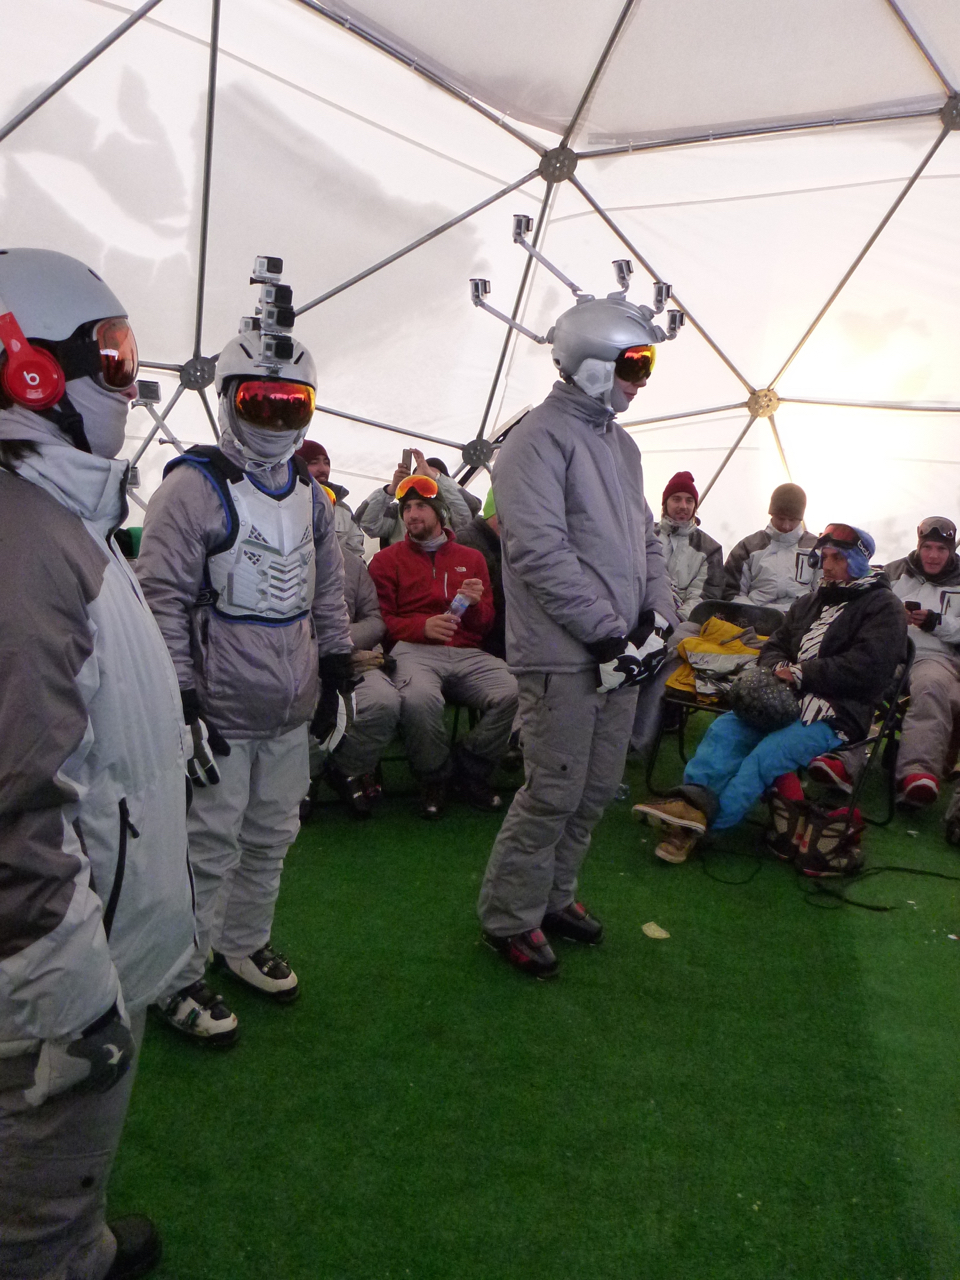 Heated tent where stunt skiers/snowboarders waited to be called to set. Chile, South America.